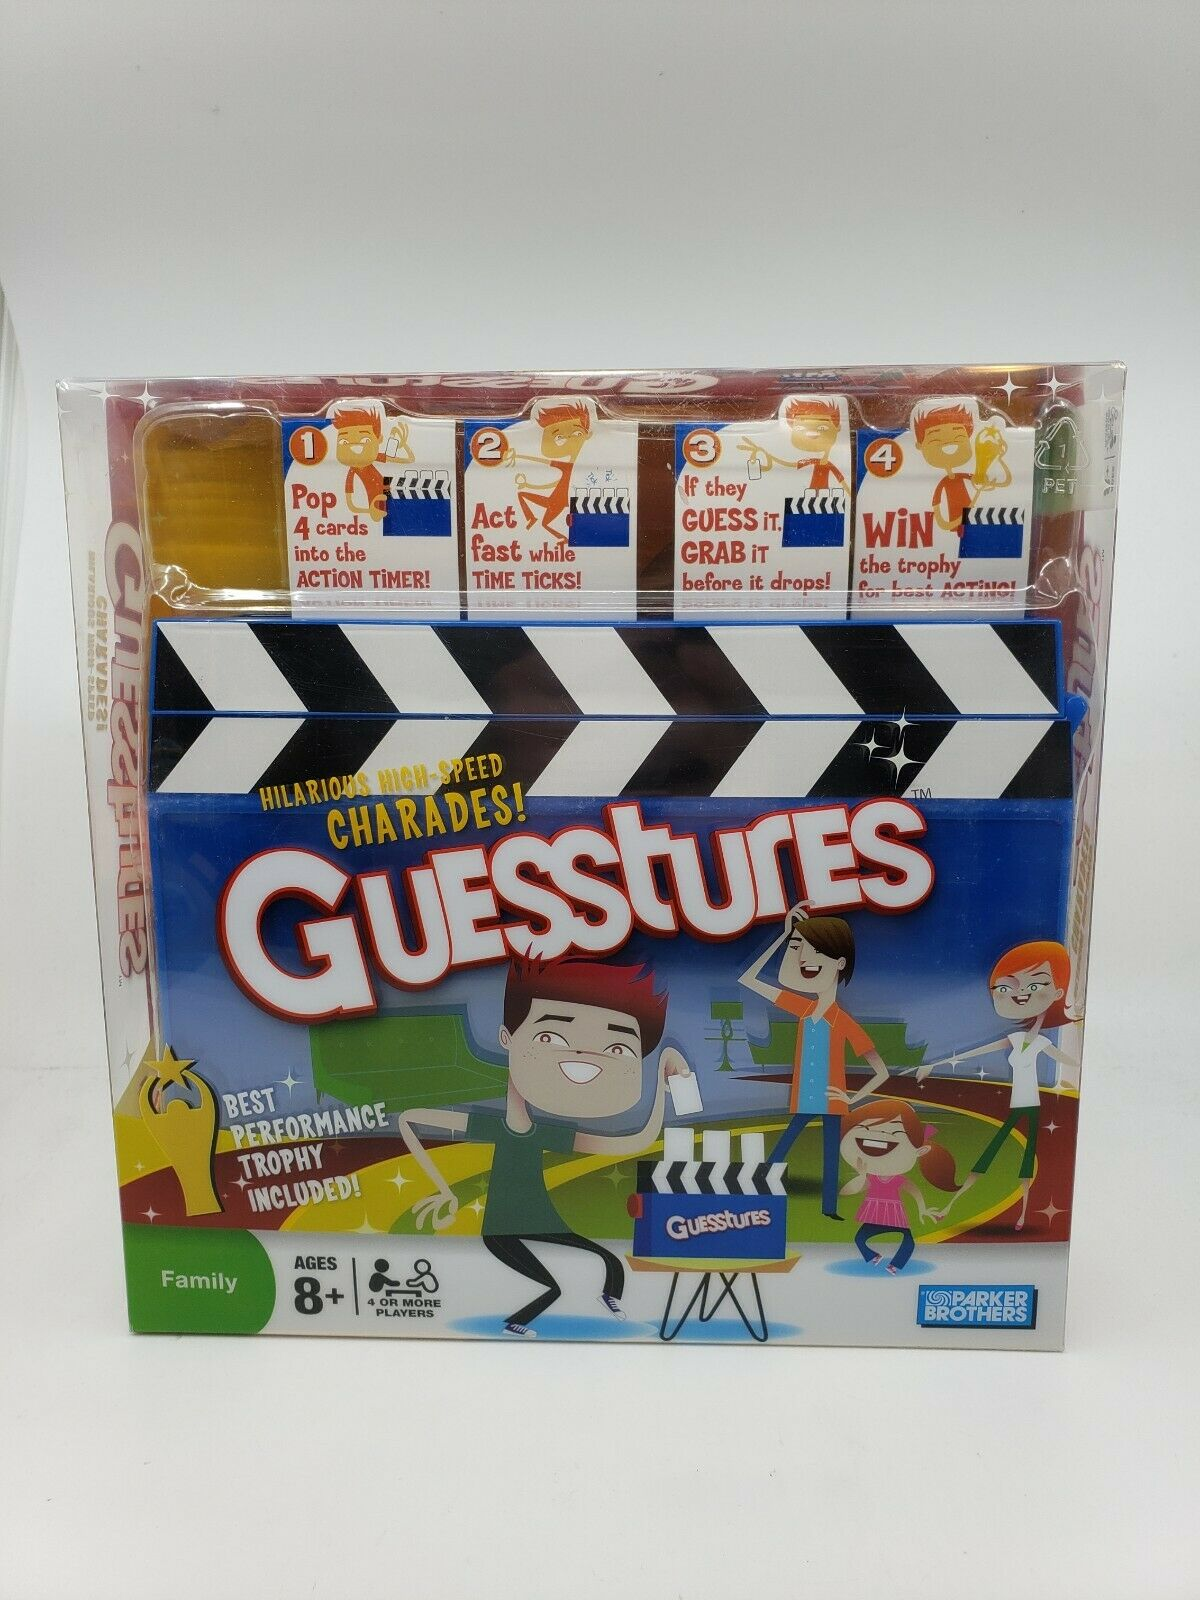 GUESSTURES NIB High Speed Speed Speed Charades Board Game Parker Bredhers 2008 NEW Unopened 7f35ab